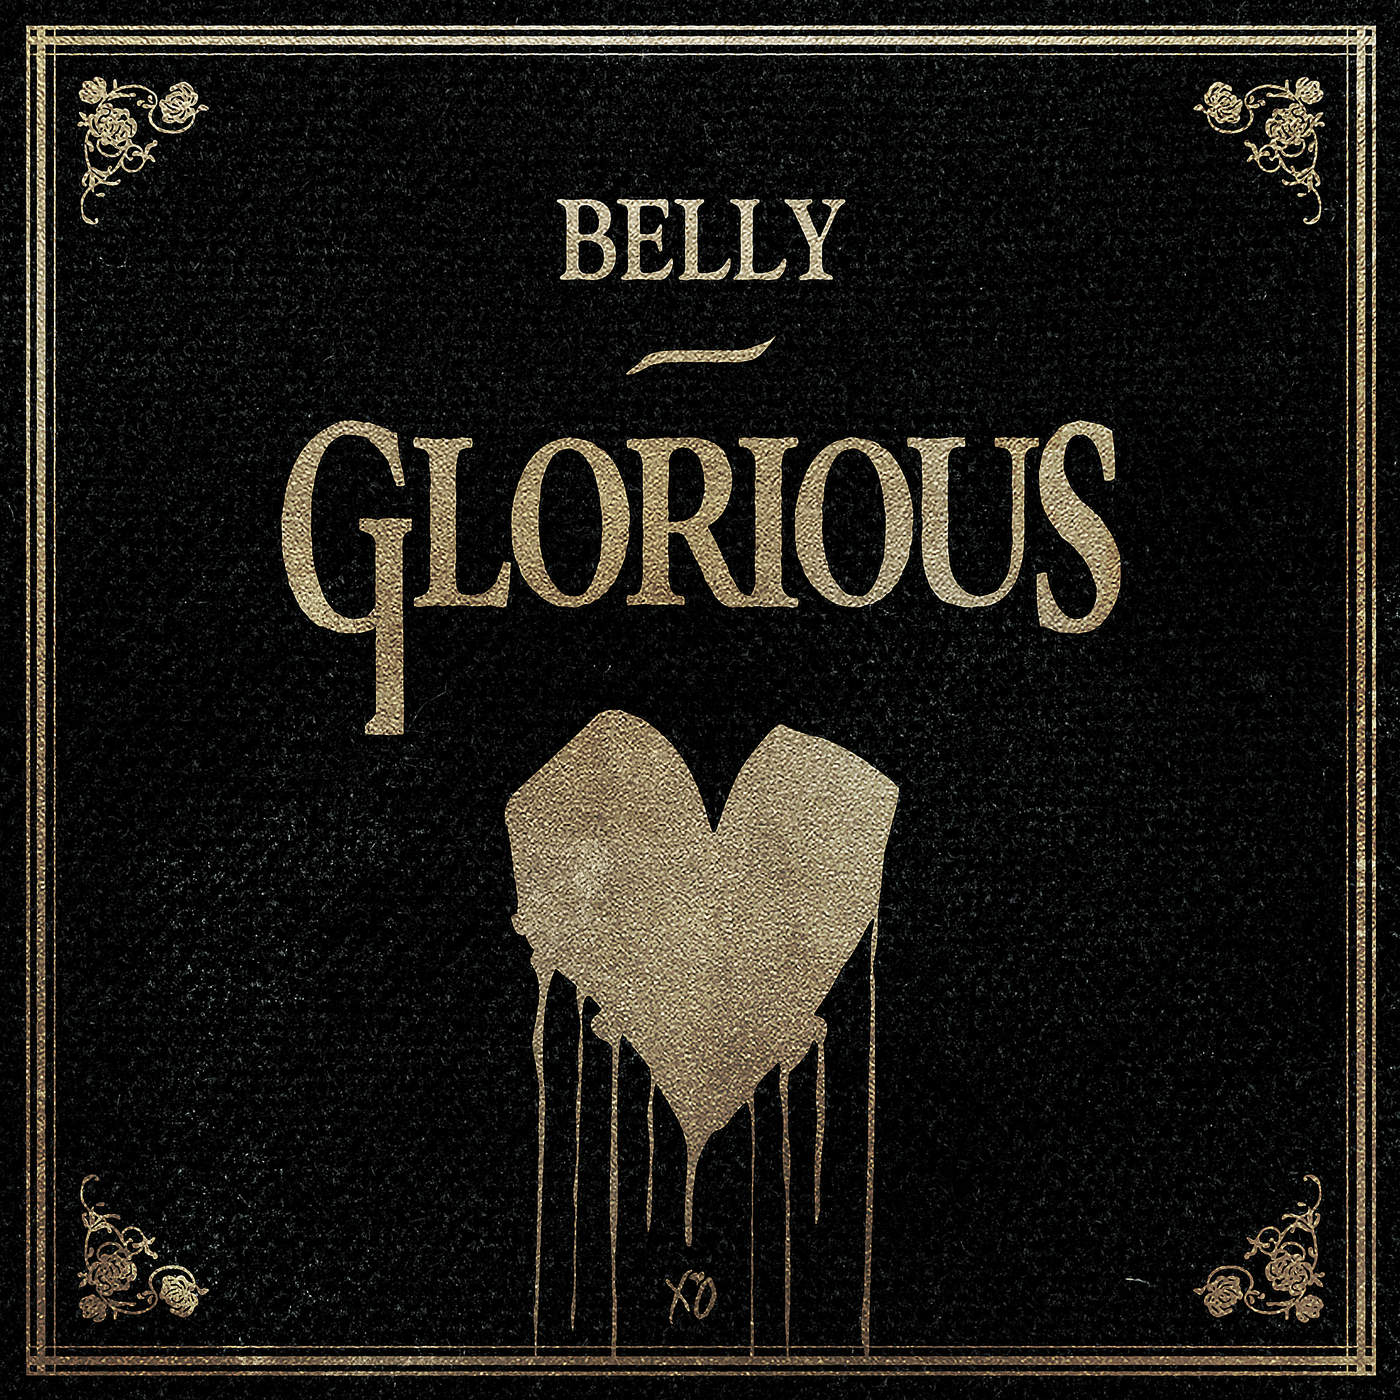 Belly - Glorious - Single Cover